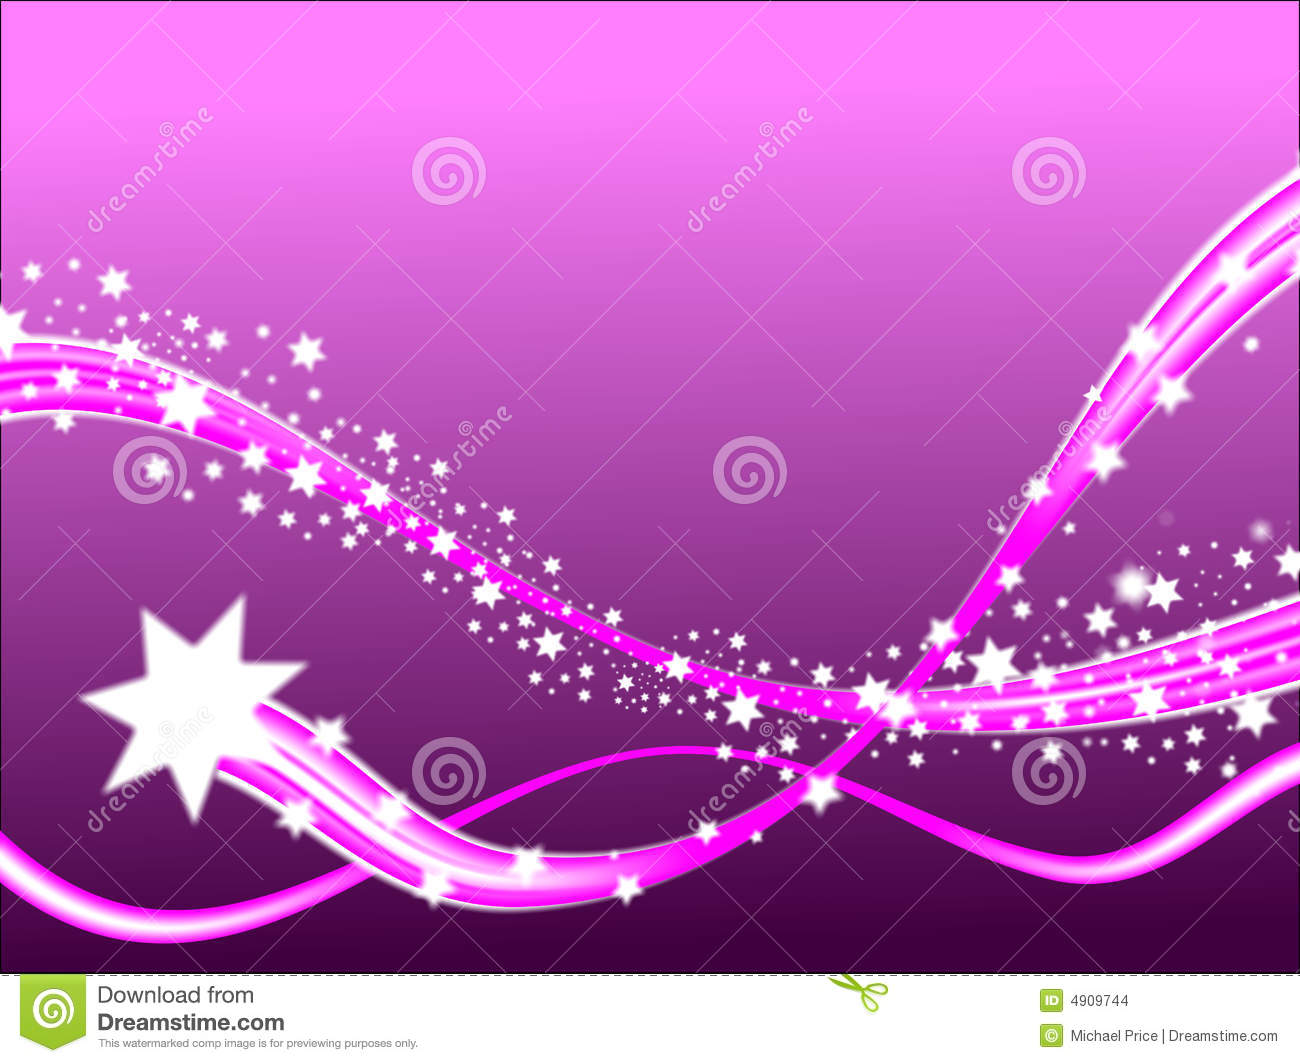 Goodwill Gift Card >> Lilac Shooting Stars Stock Images - Image: 4909744